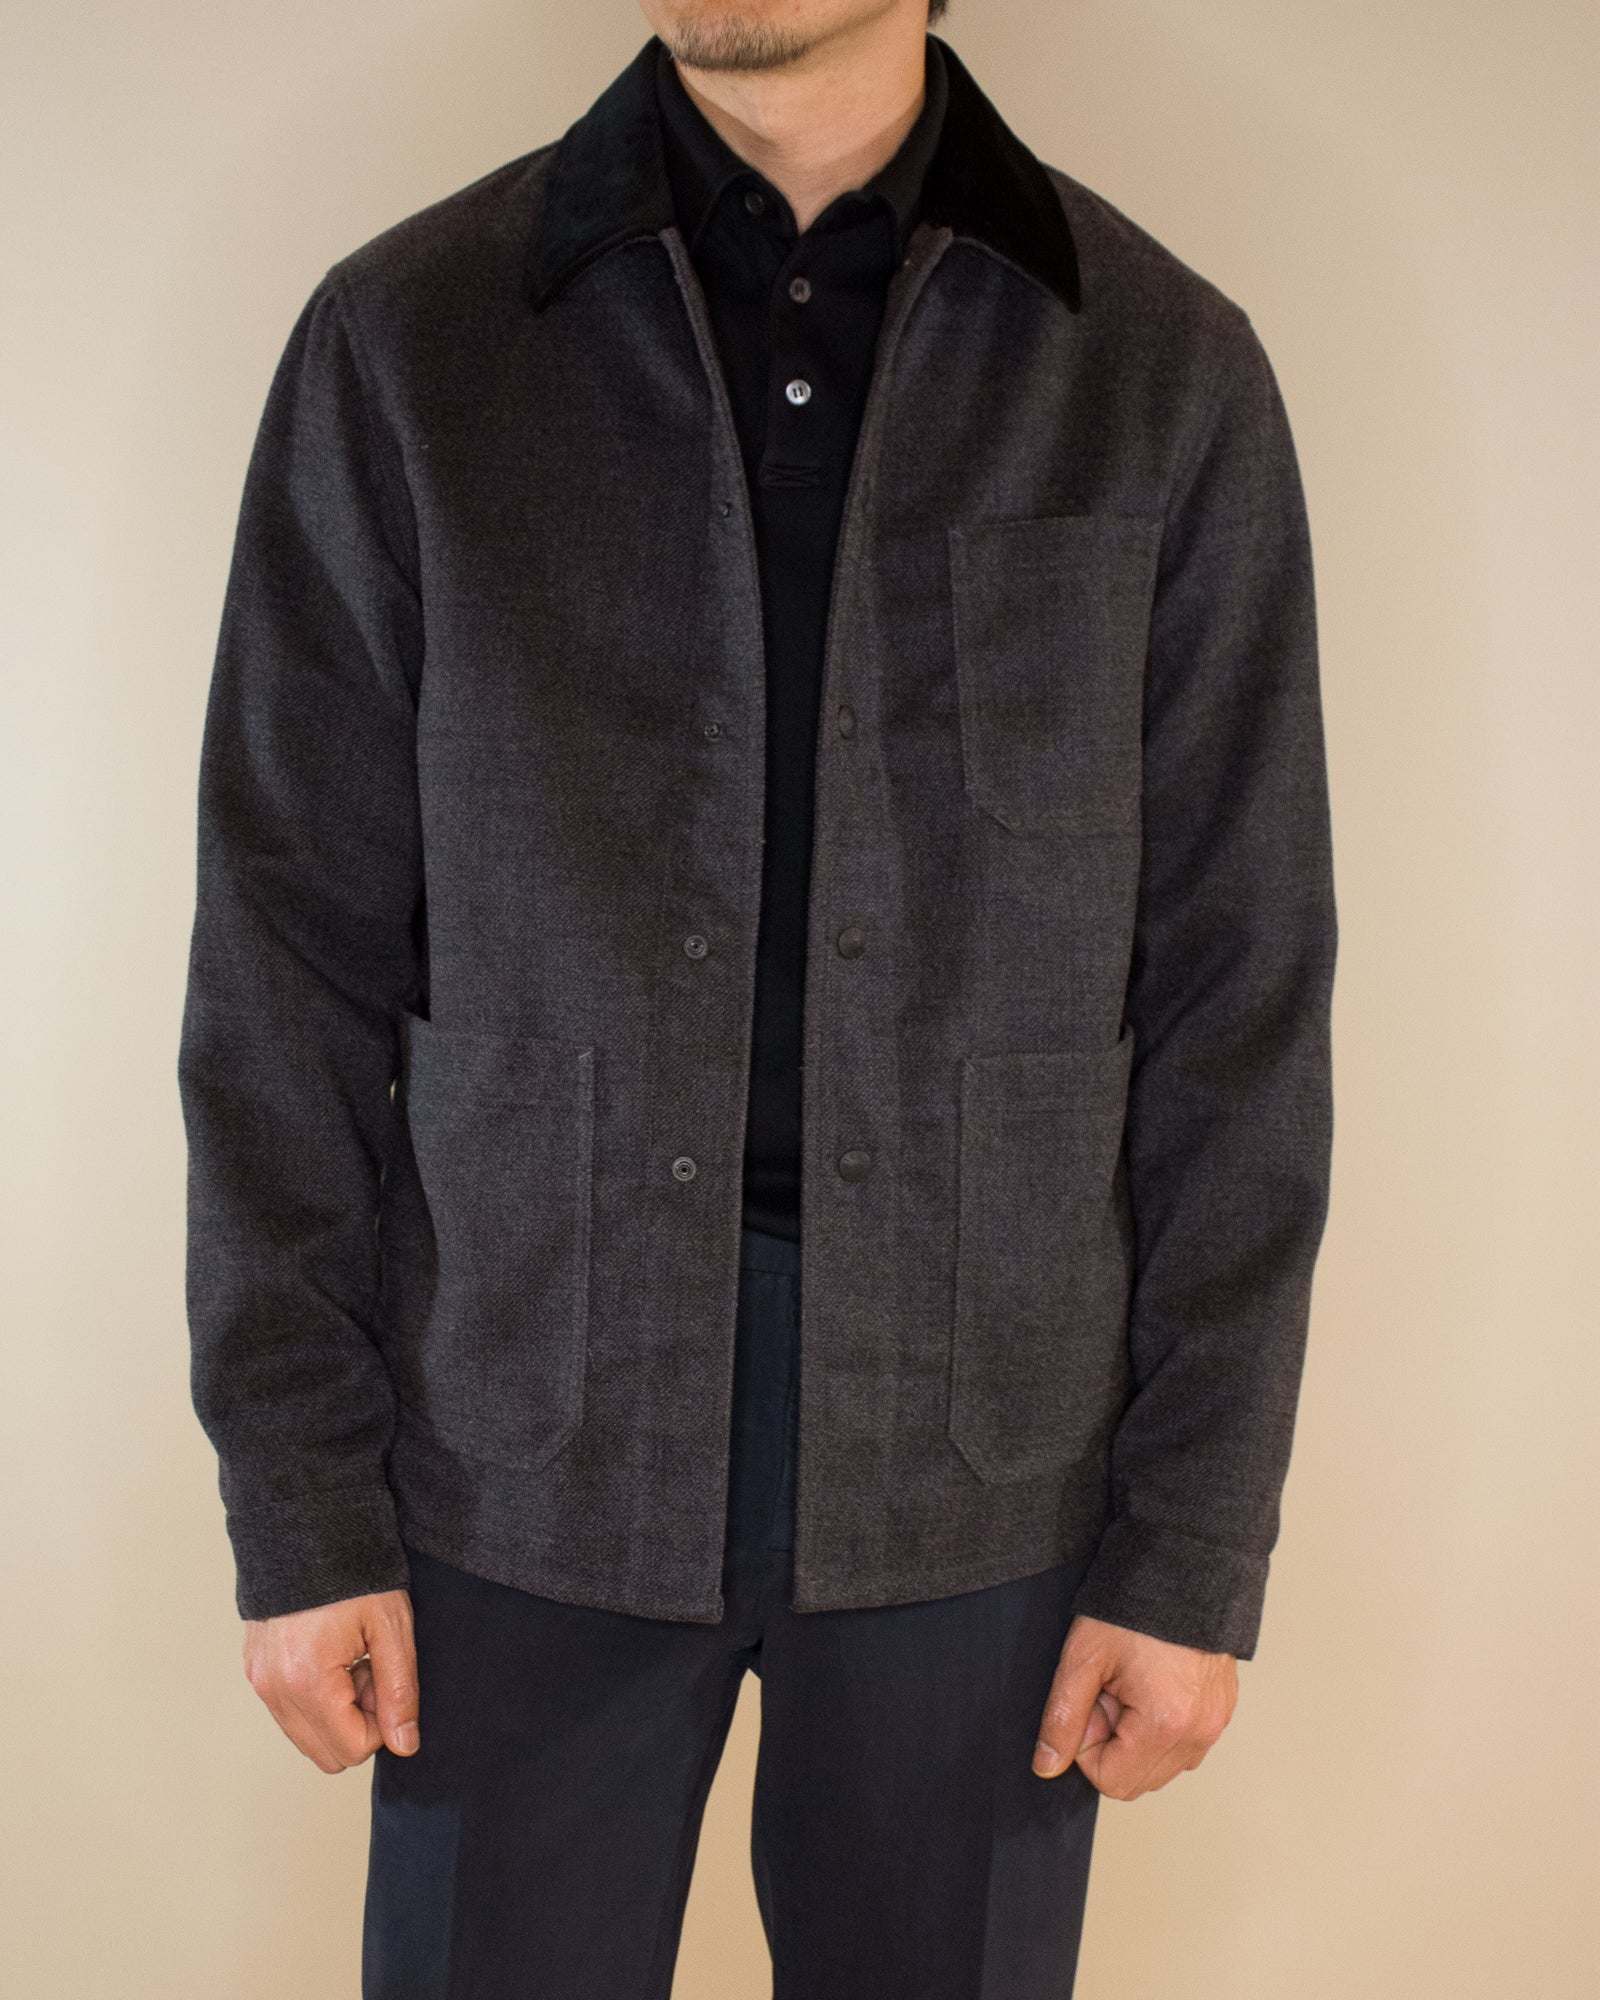 SLOWEAR X Nanamica Worker Jacket